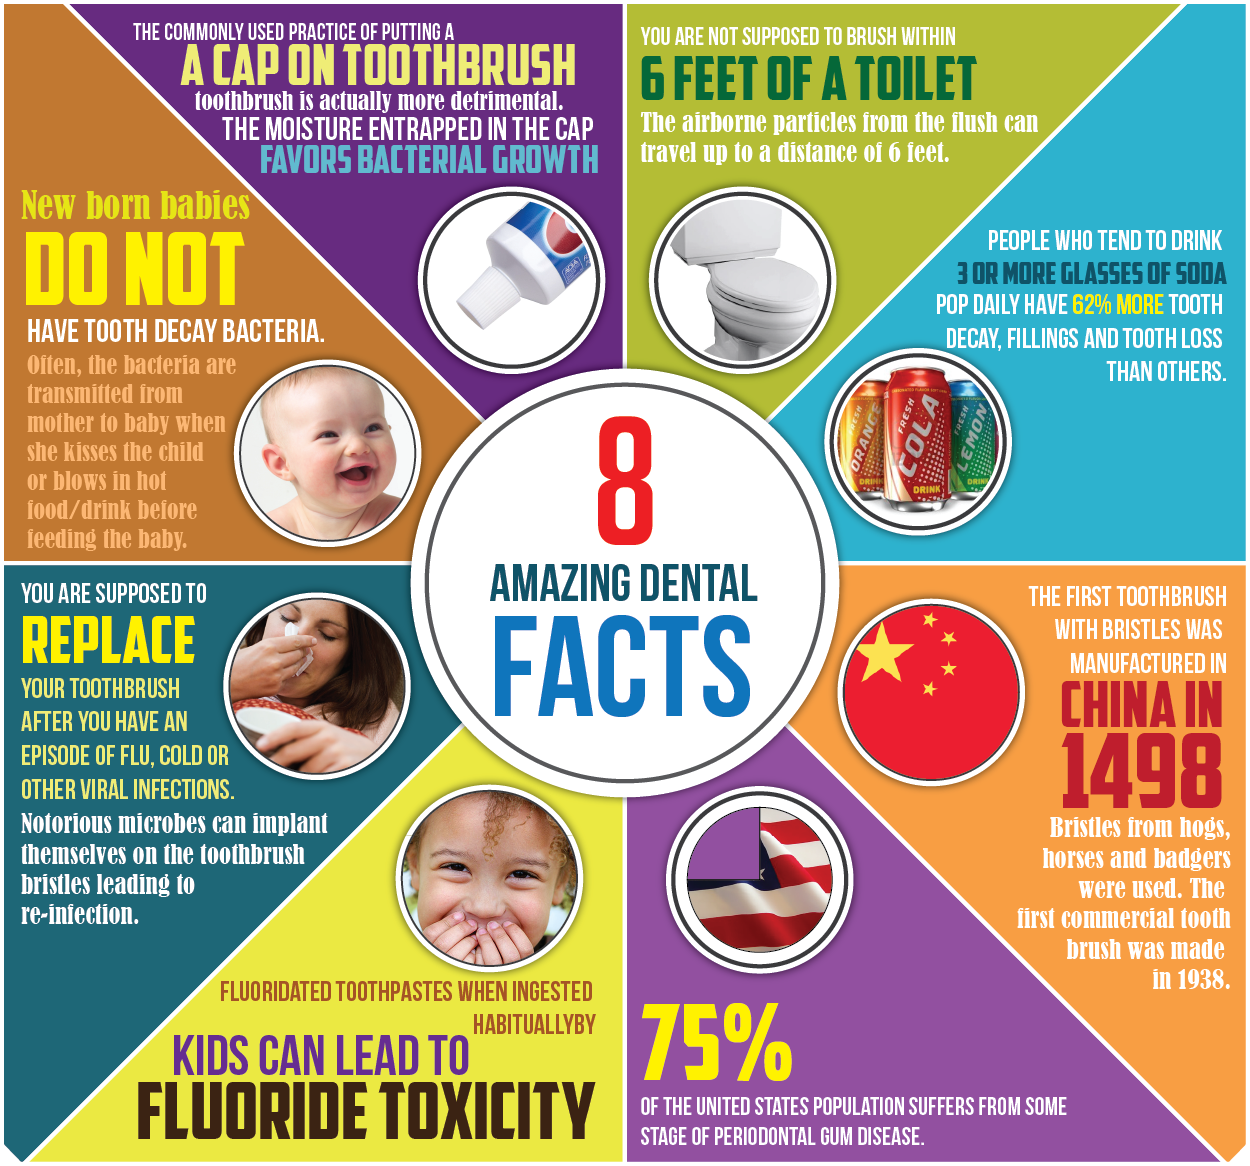 17 Best images about Fun Dental Facts on Pinterest | Mouths ...